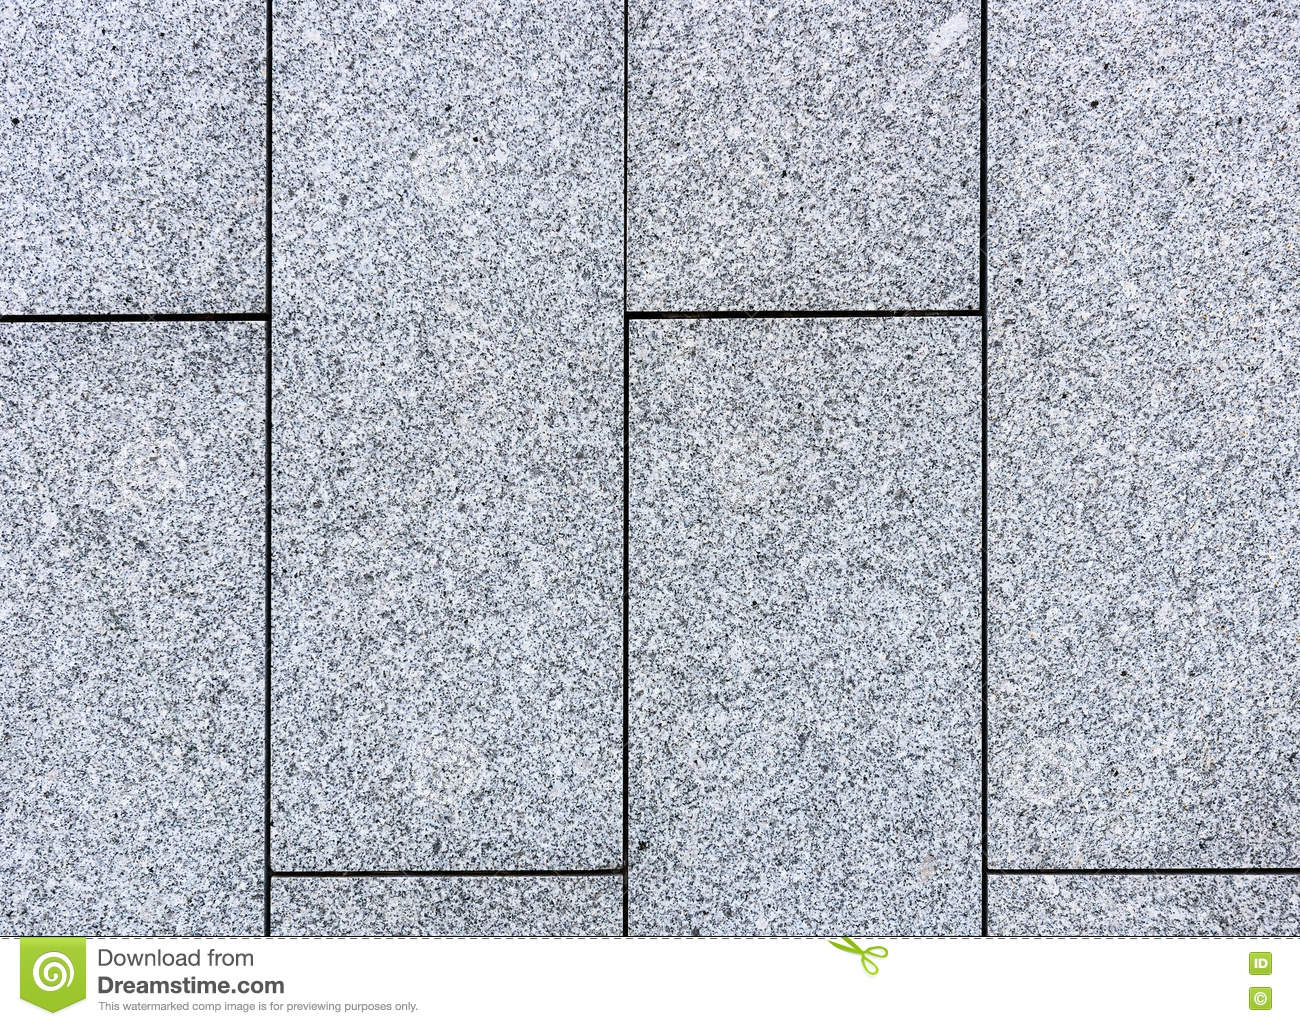 Granitfliesen Außenbereich Grey And Grainy Granite Or Marble Texture Tiles Or Slabs